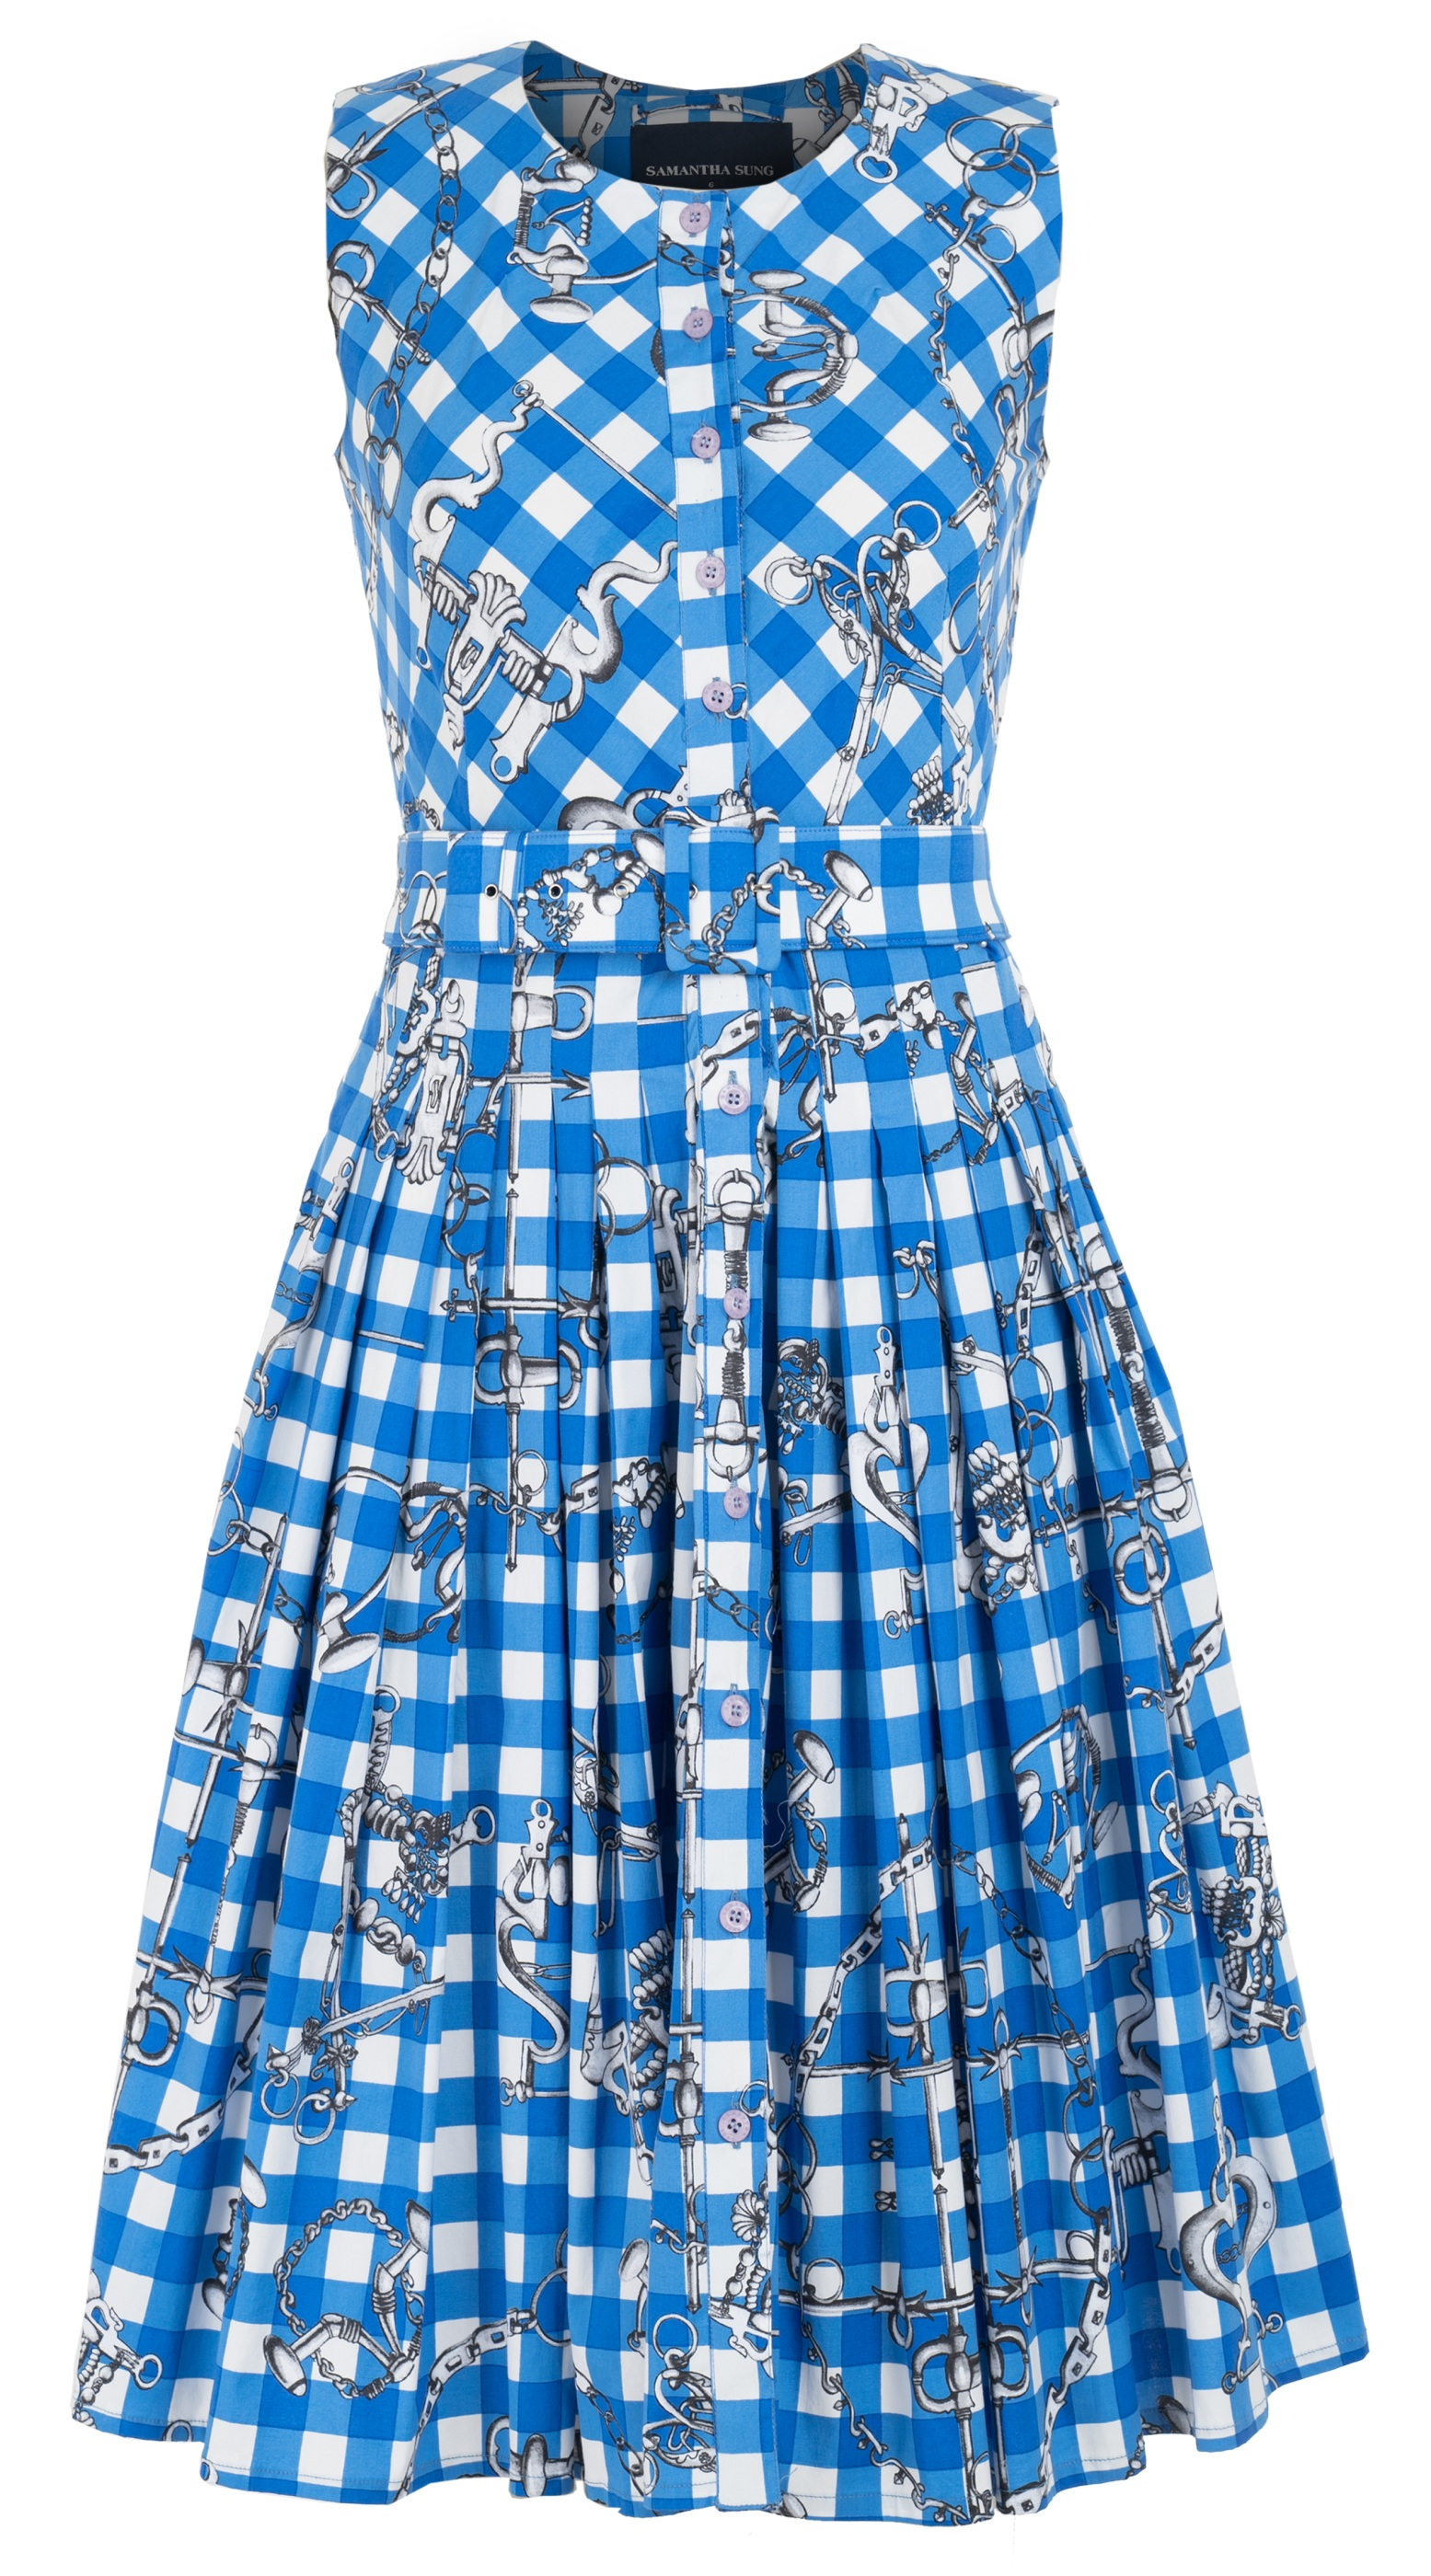 Horse Chain Gingham Bright_White Sky Blue_Audrey Dress #2 Crew Neck Sleeveless_CS_Front-2